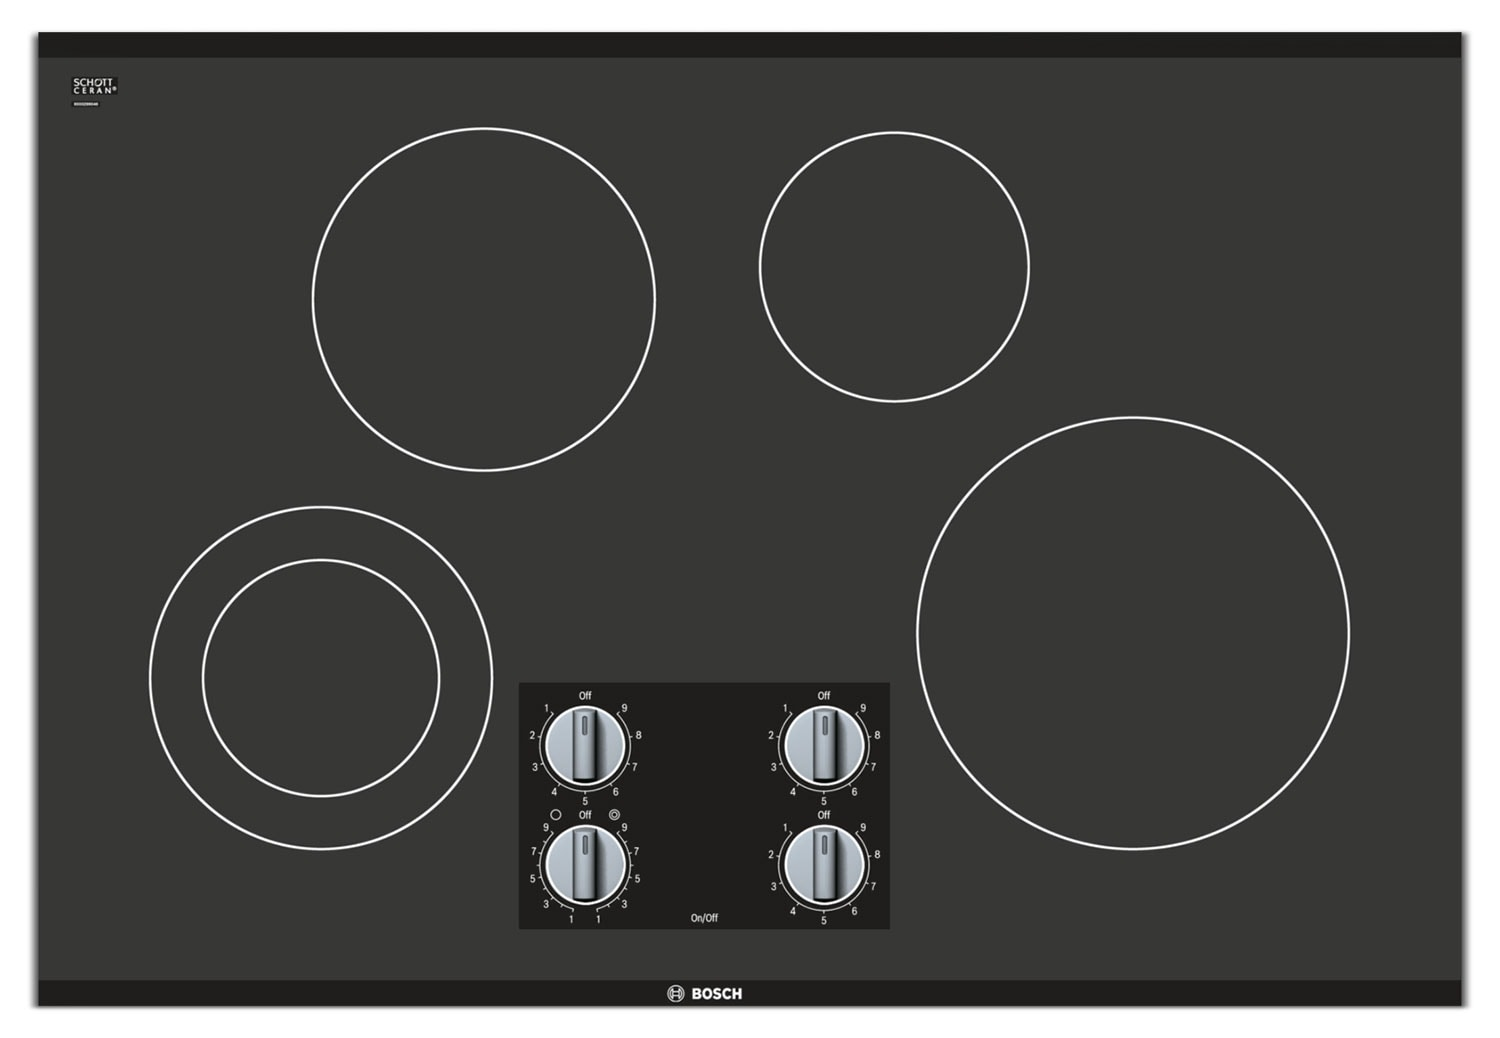 Cooking Products - Bosch Black Electric Cooktop - NEM5066UC